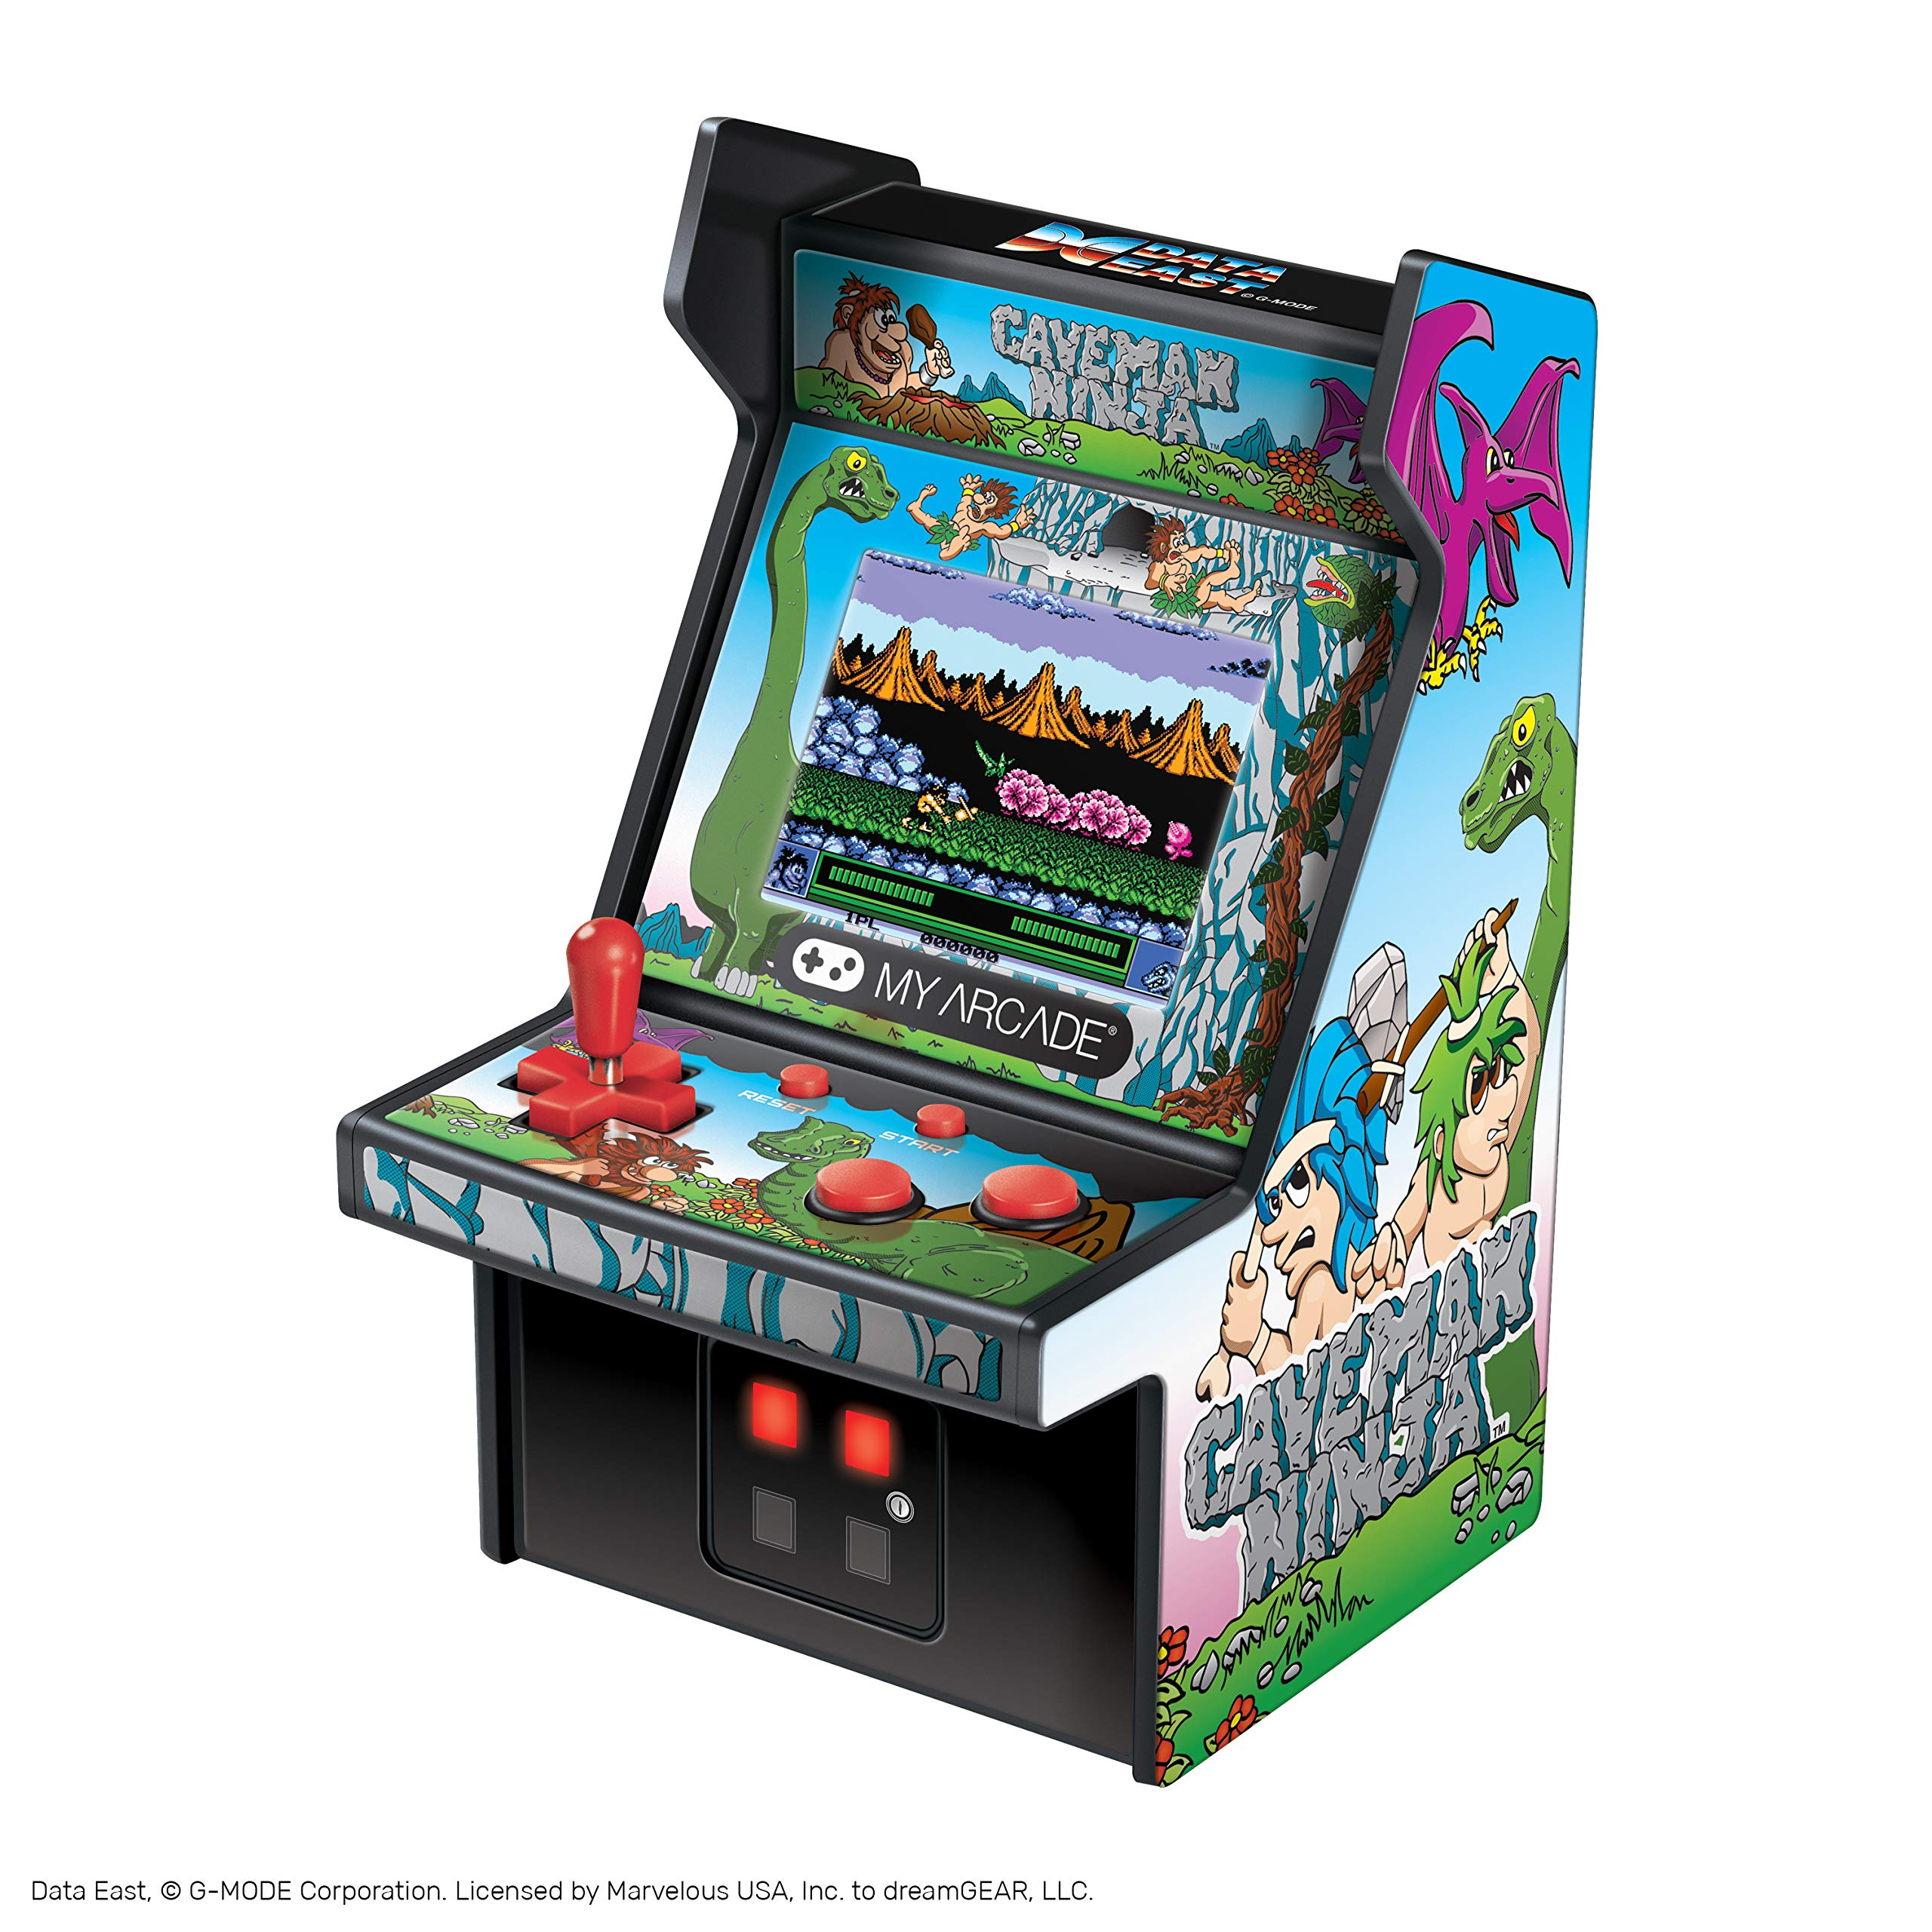 My Arcade Micro Arcade 6'' Collectable Retro Arcade Machine - CaveMan Ninja: Joe & Mac